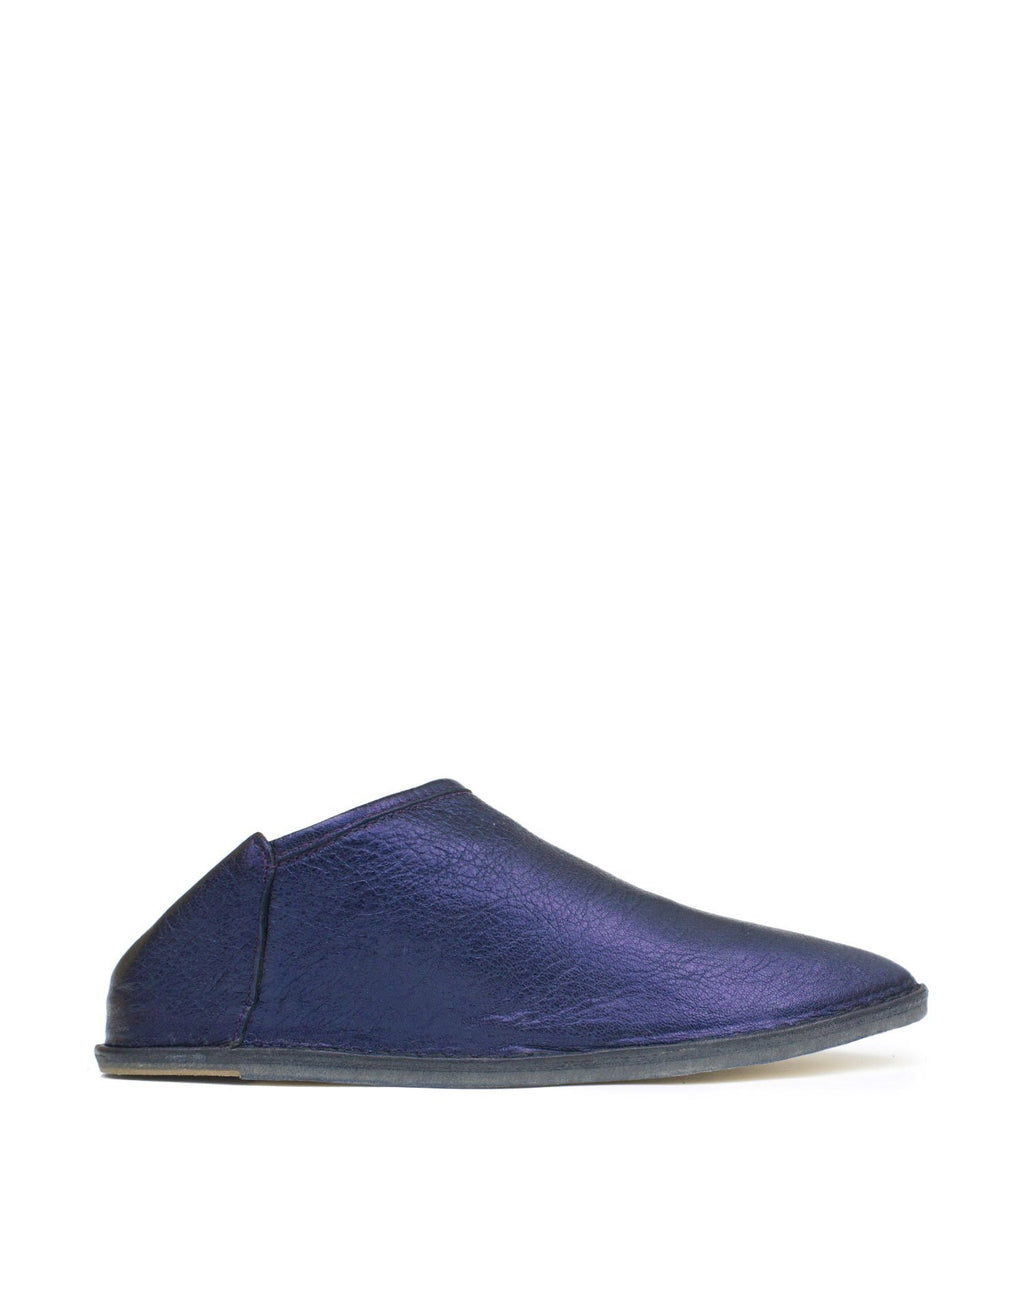 Designer Slipper Shoe sample by Georgina Goodman, effortless style for any age